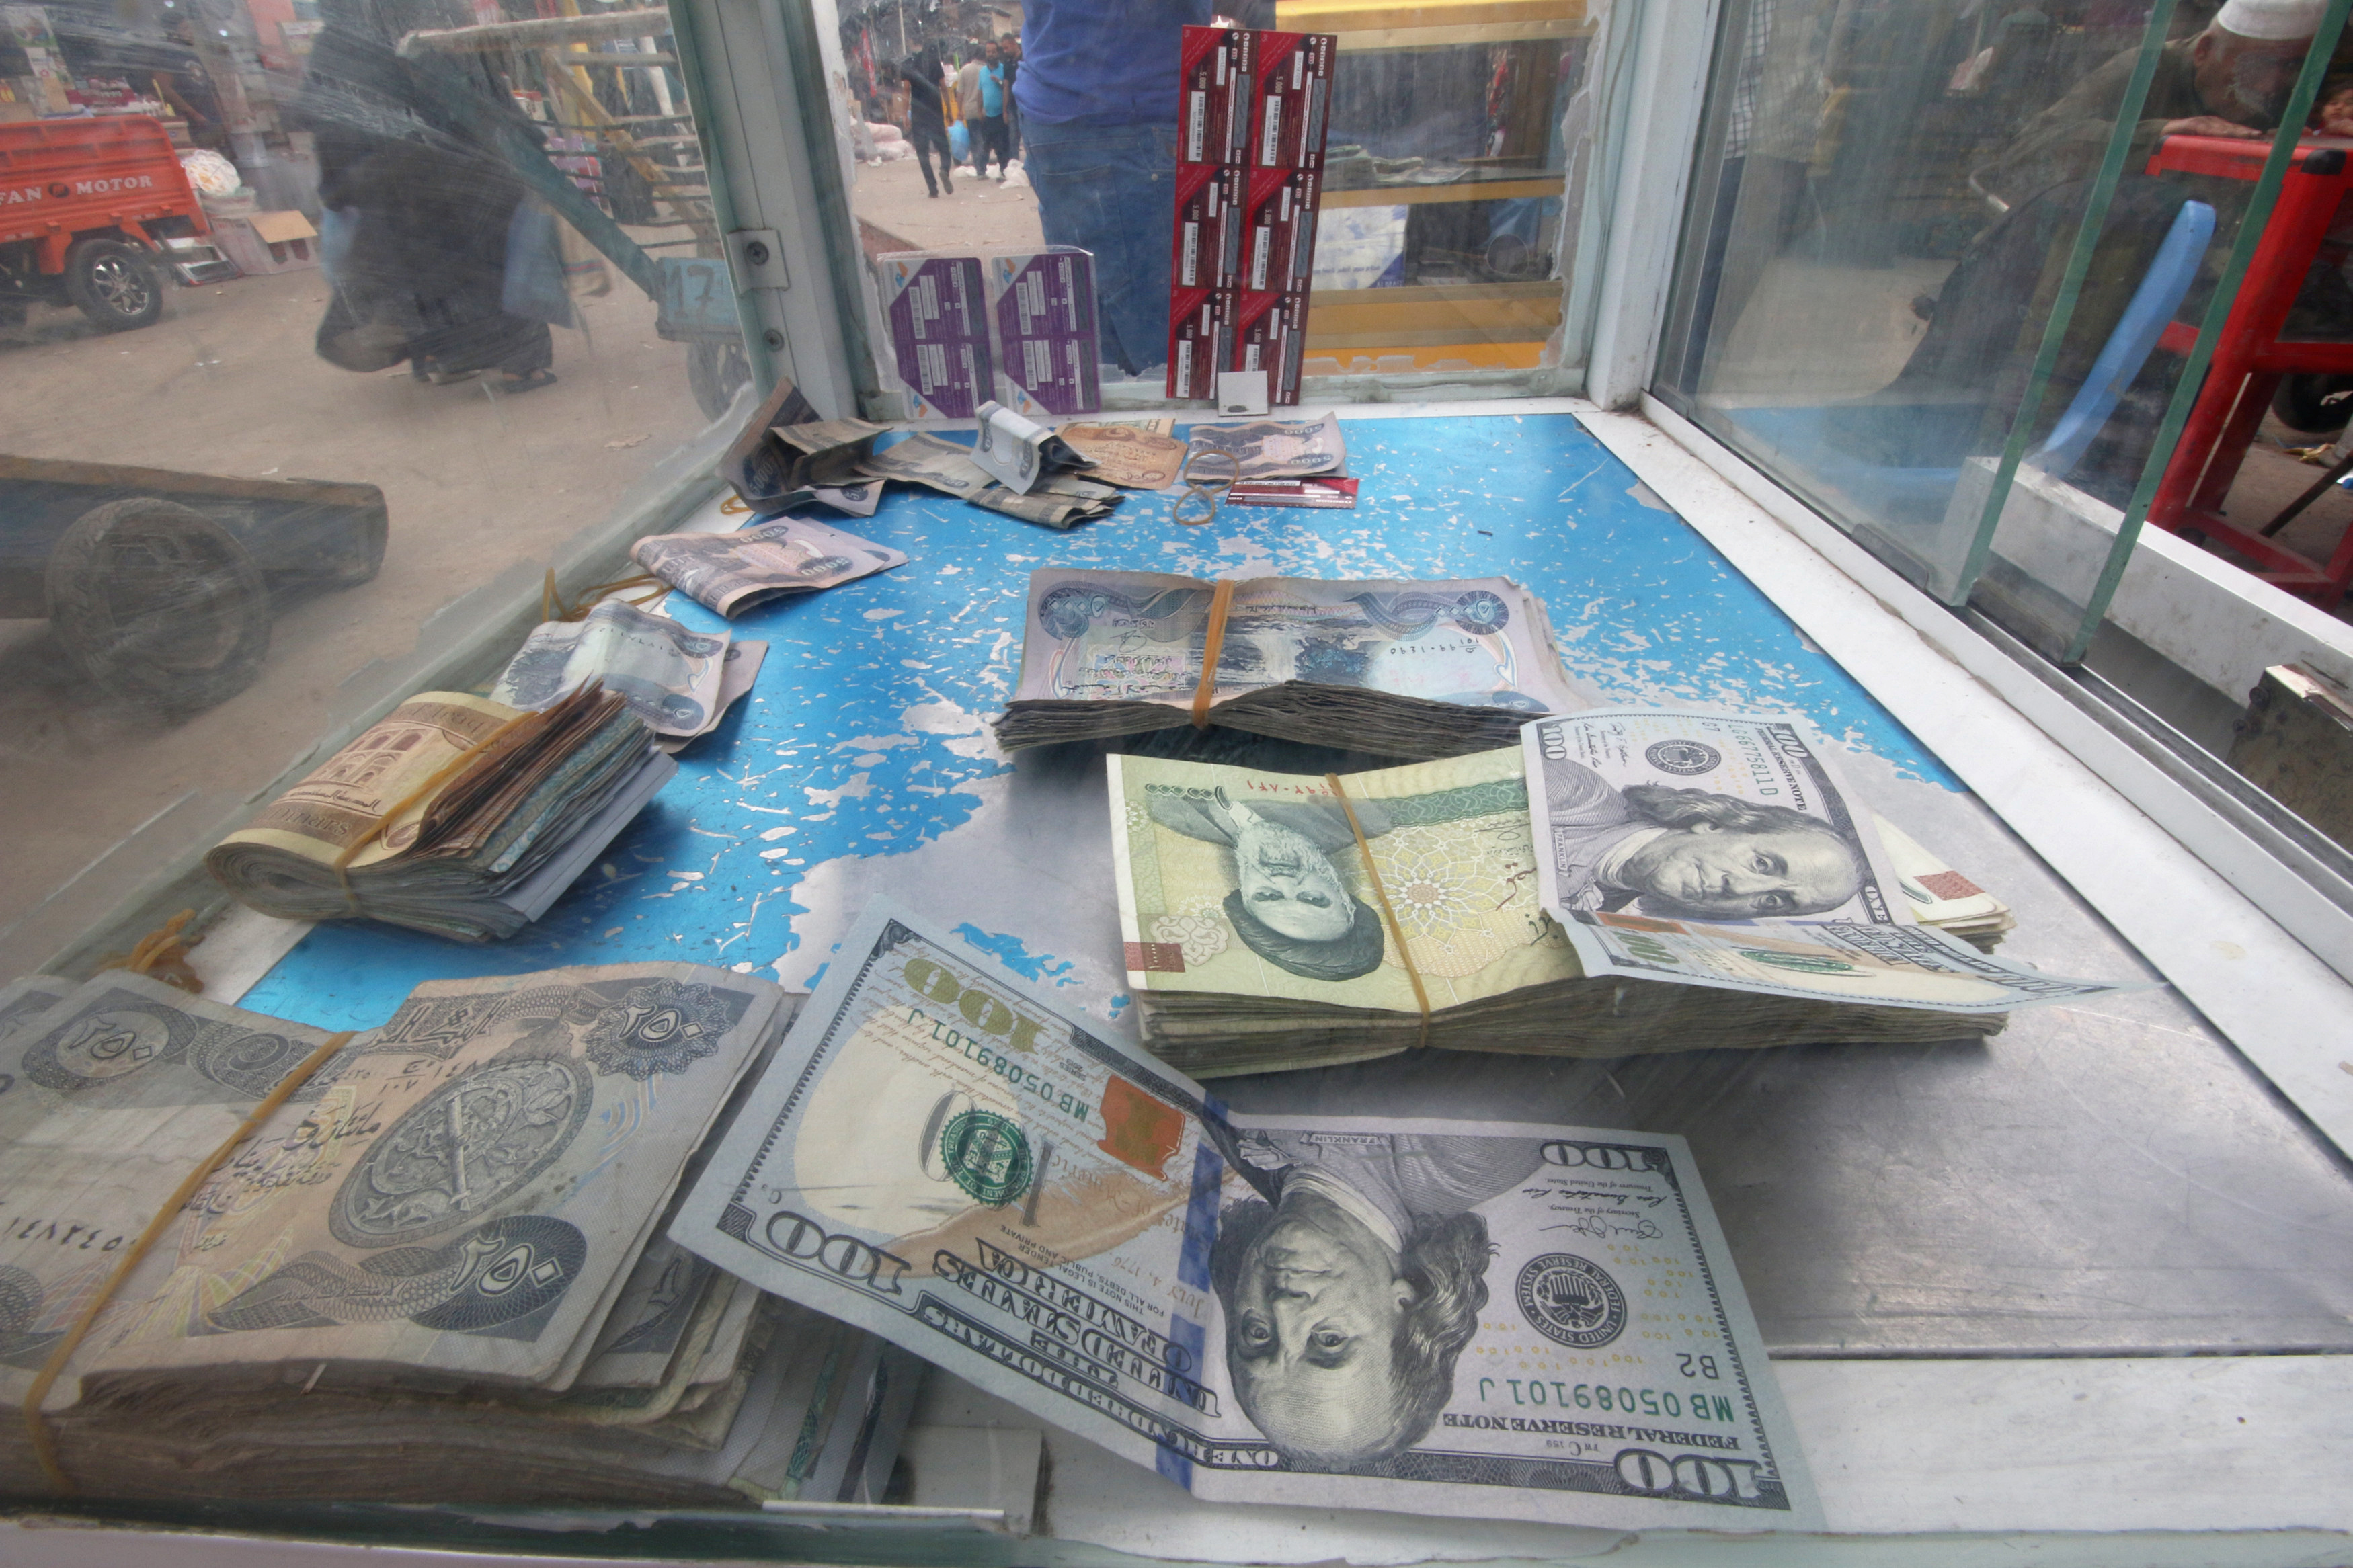 FILE PHOTO: Iranian rials, U.S. dollars and Iraqi dinars are seen at a currency exchange shopÊin Basra, Iraq November 3, 2018. Picture taken November 3, 2018. REUTERS/Essam al-Sudani